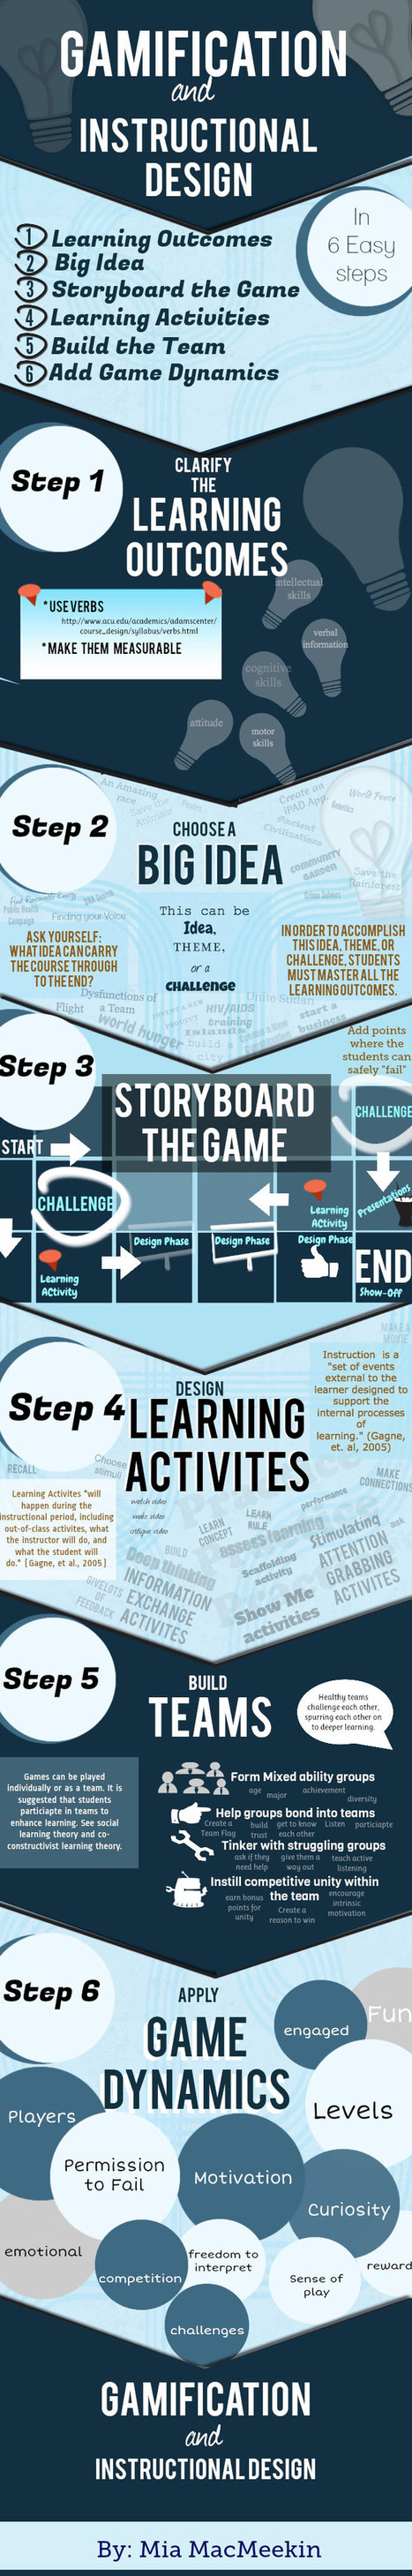 A 6-Step Process For Adding Gamification To Your Classroom | ANALYZING EDUCATIONAL TECHNOLOGY | Scoop.it